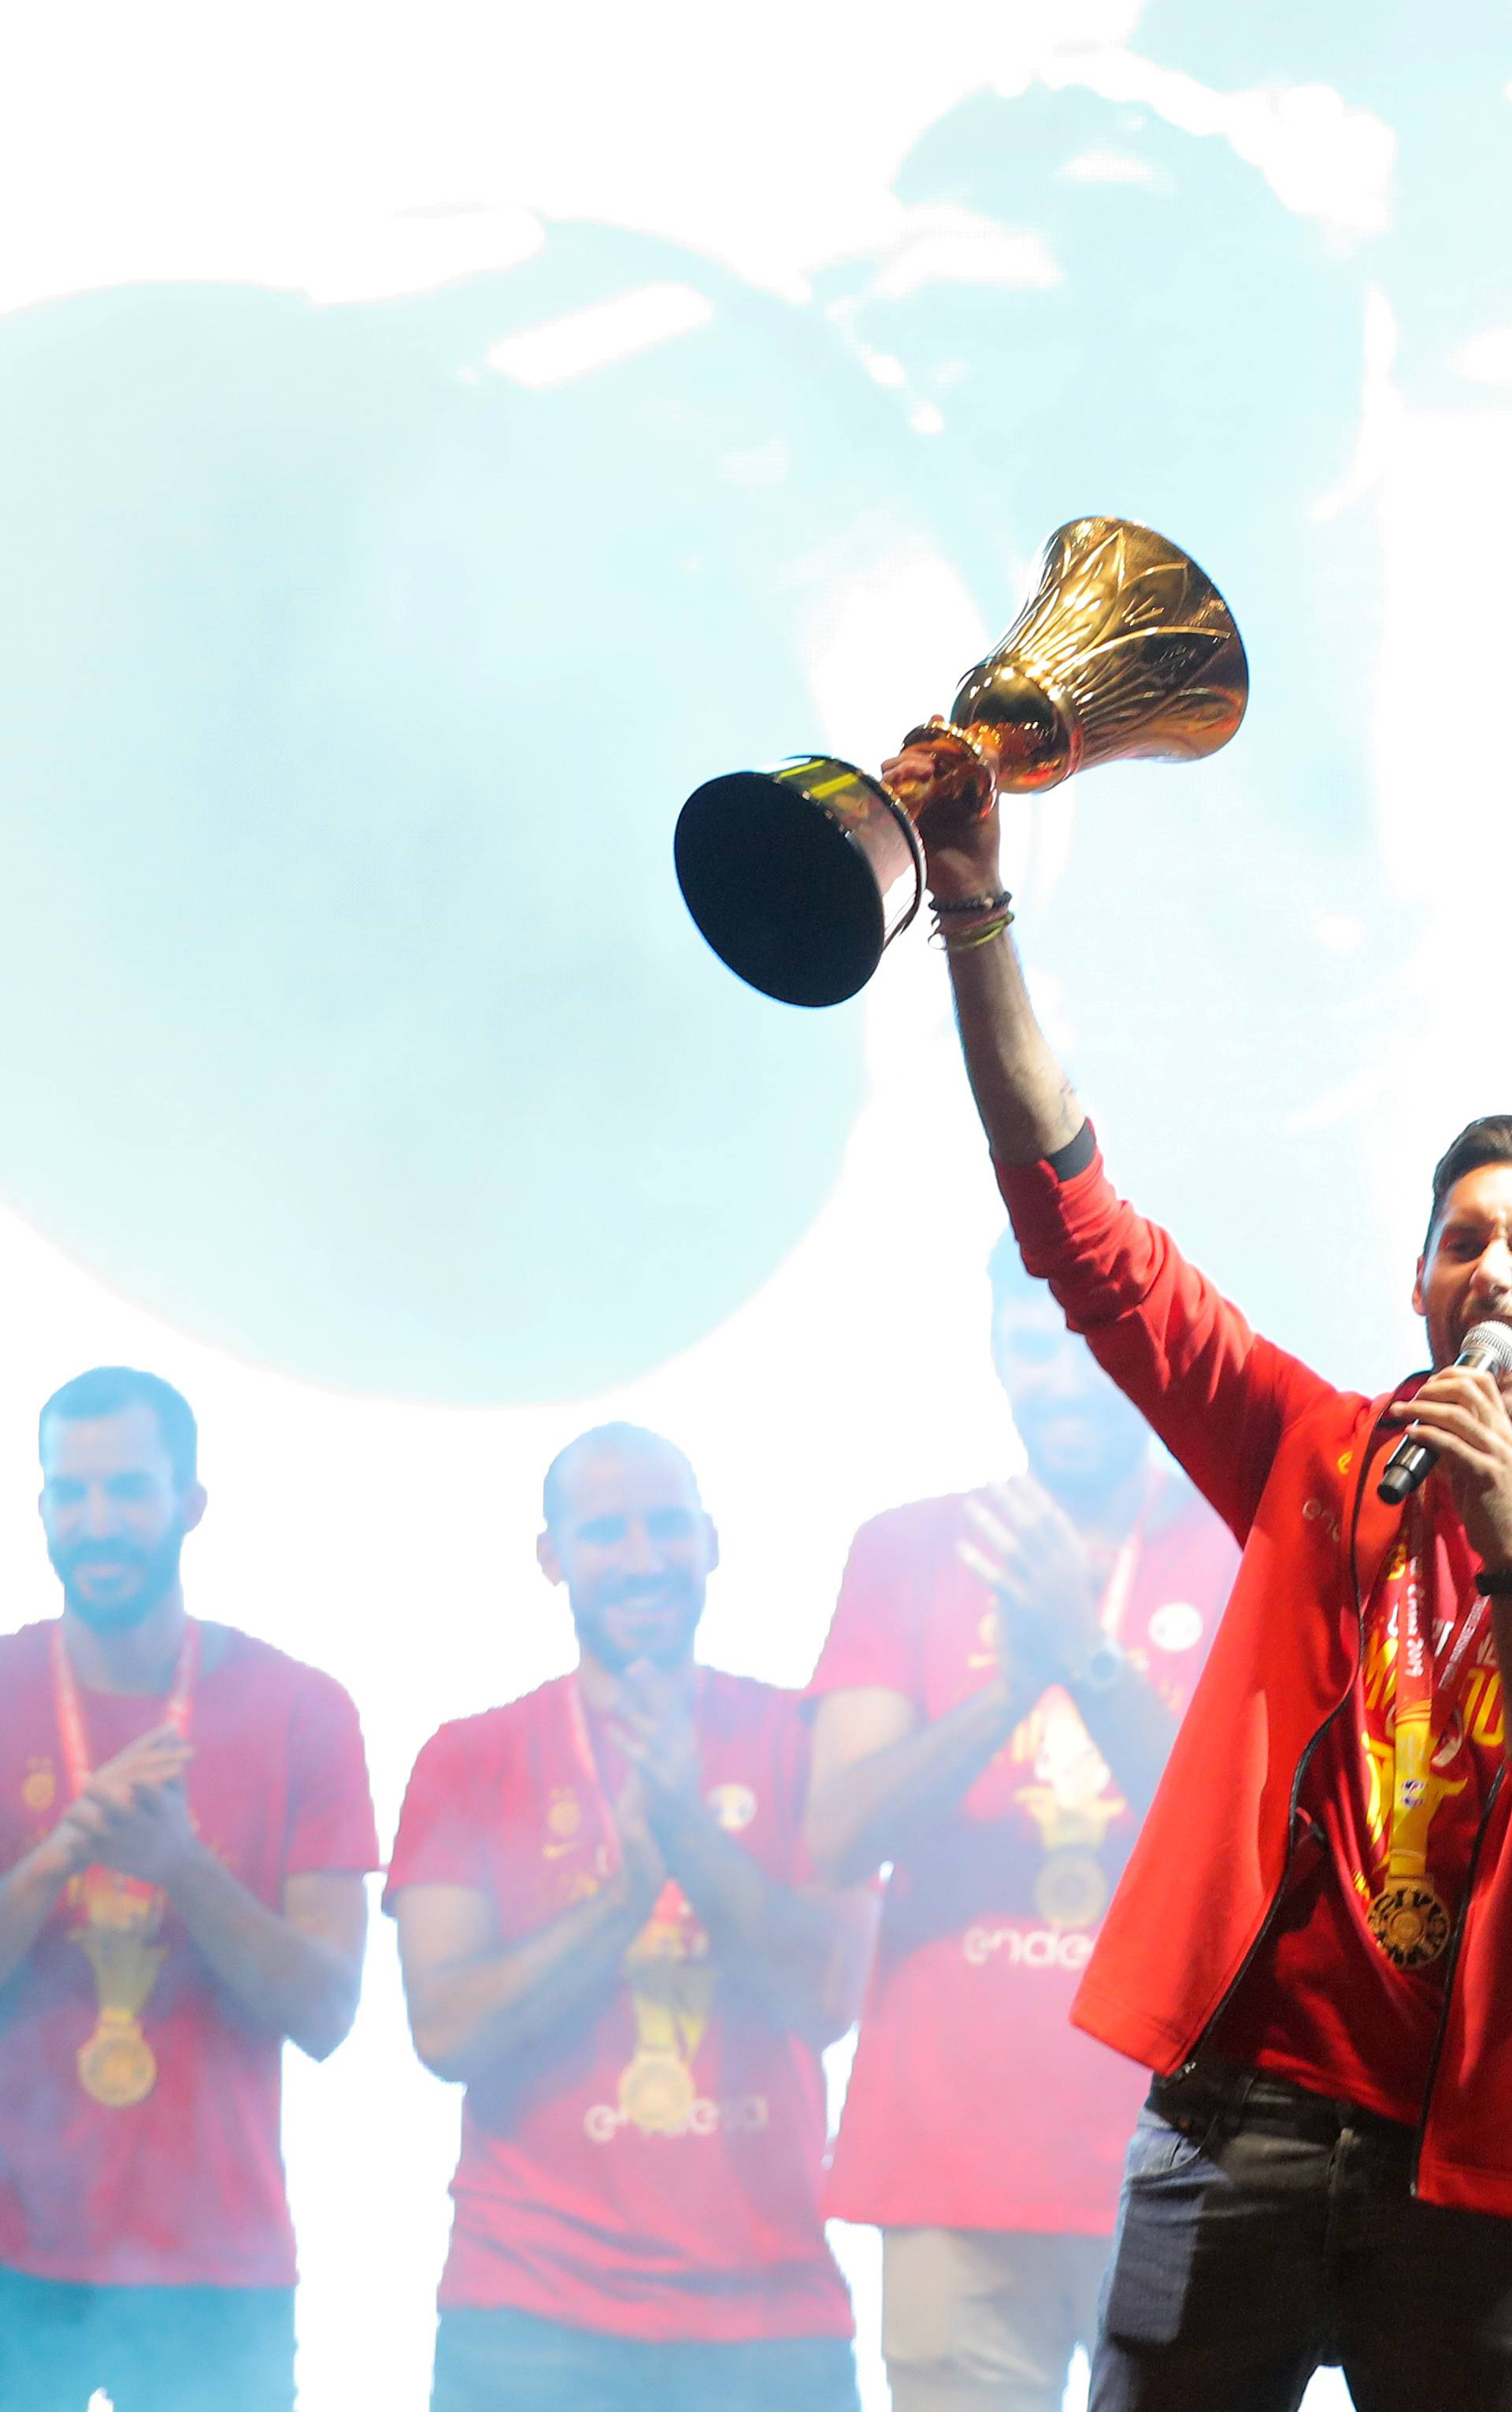 Spain celebrate their Basketball World Cup Win in Madrid